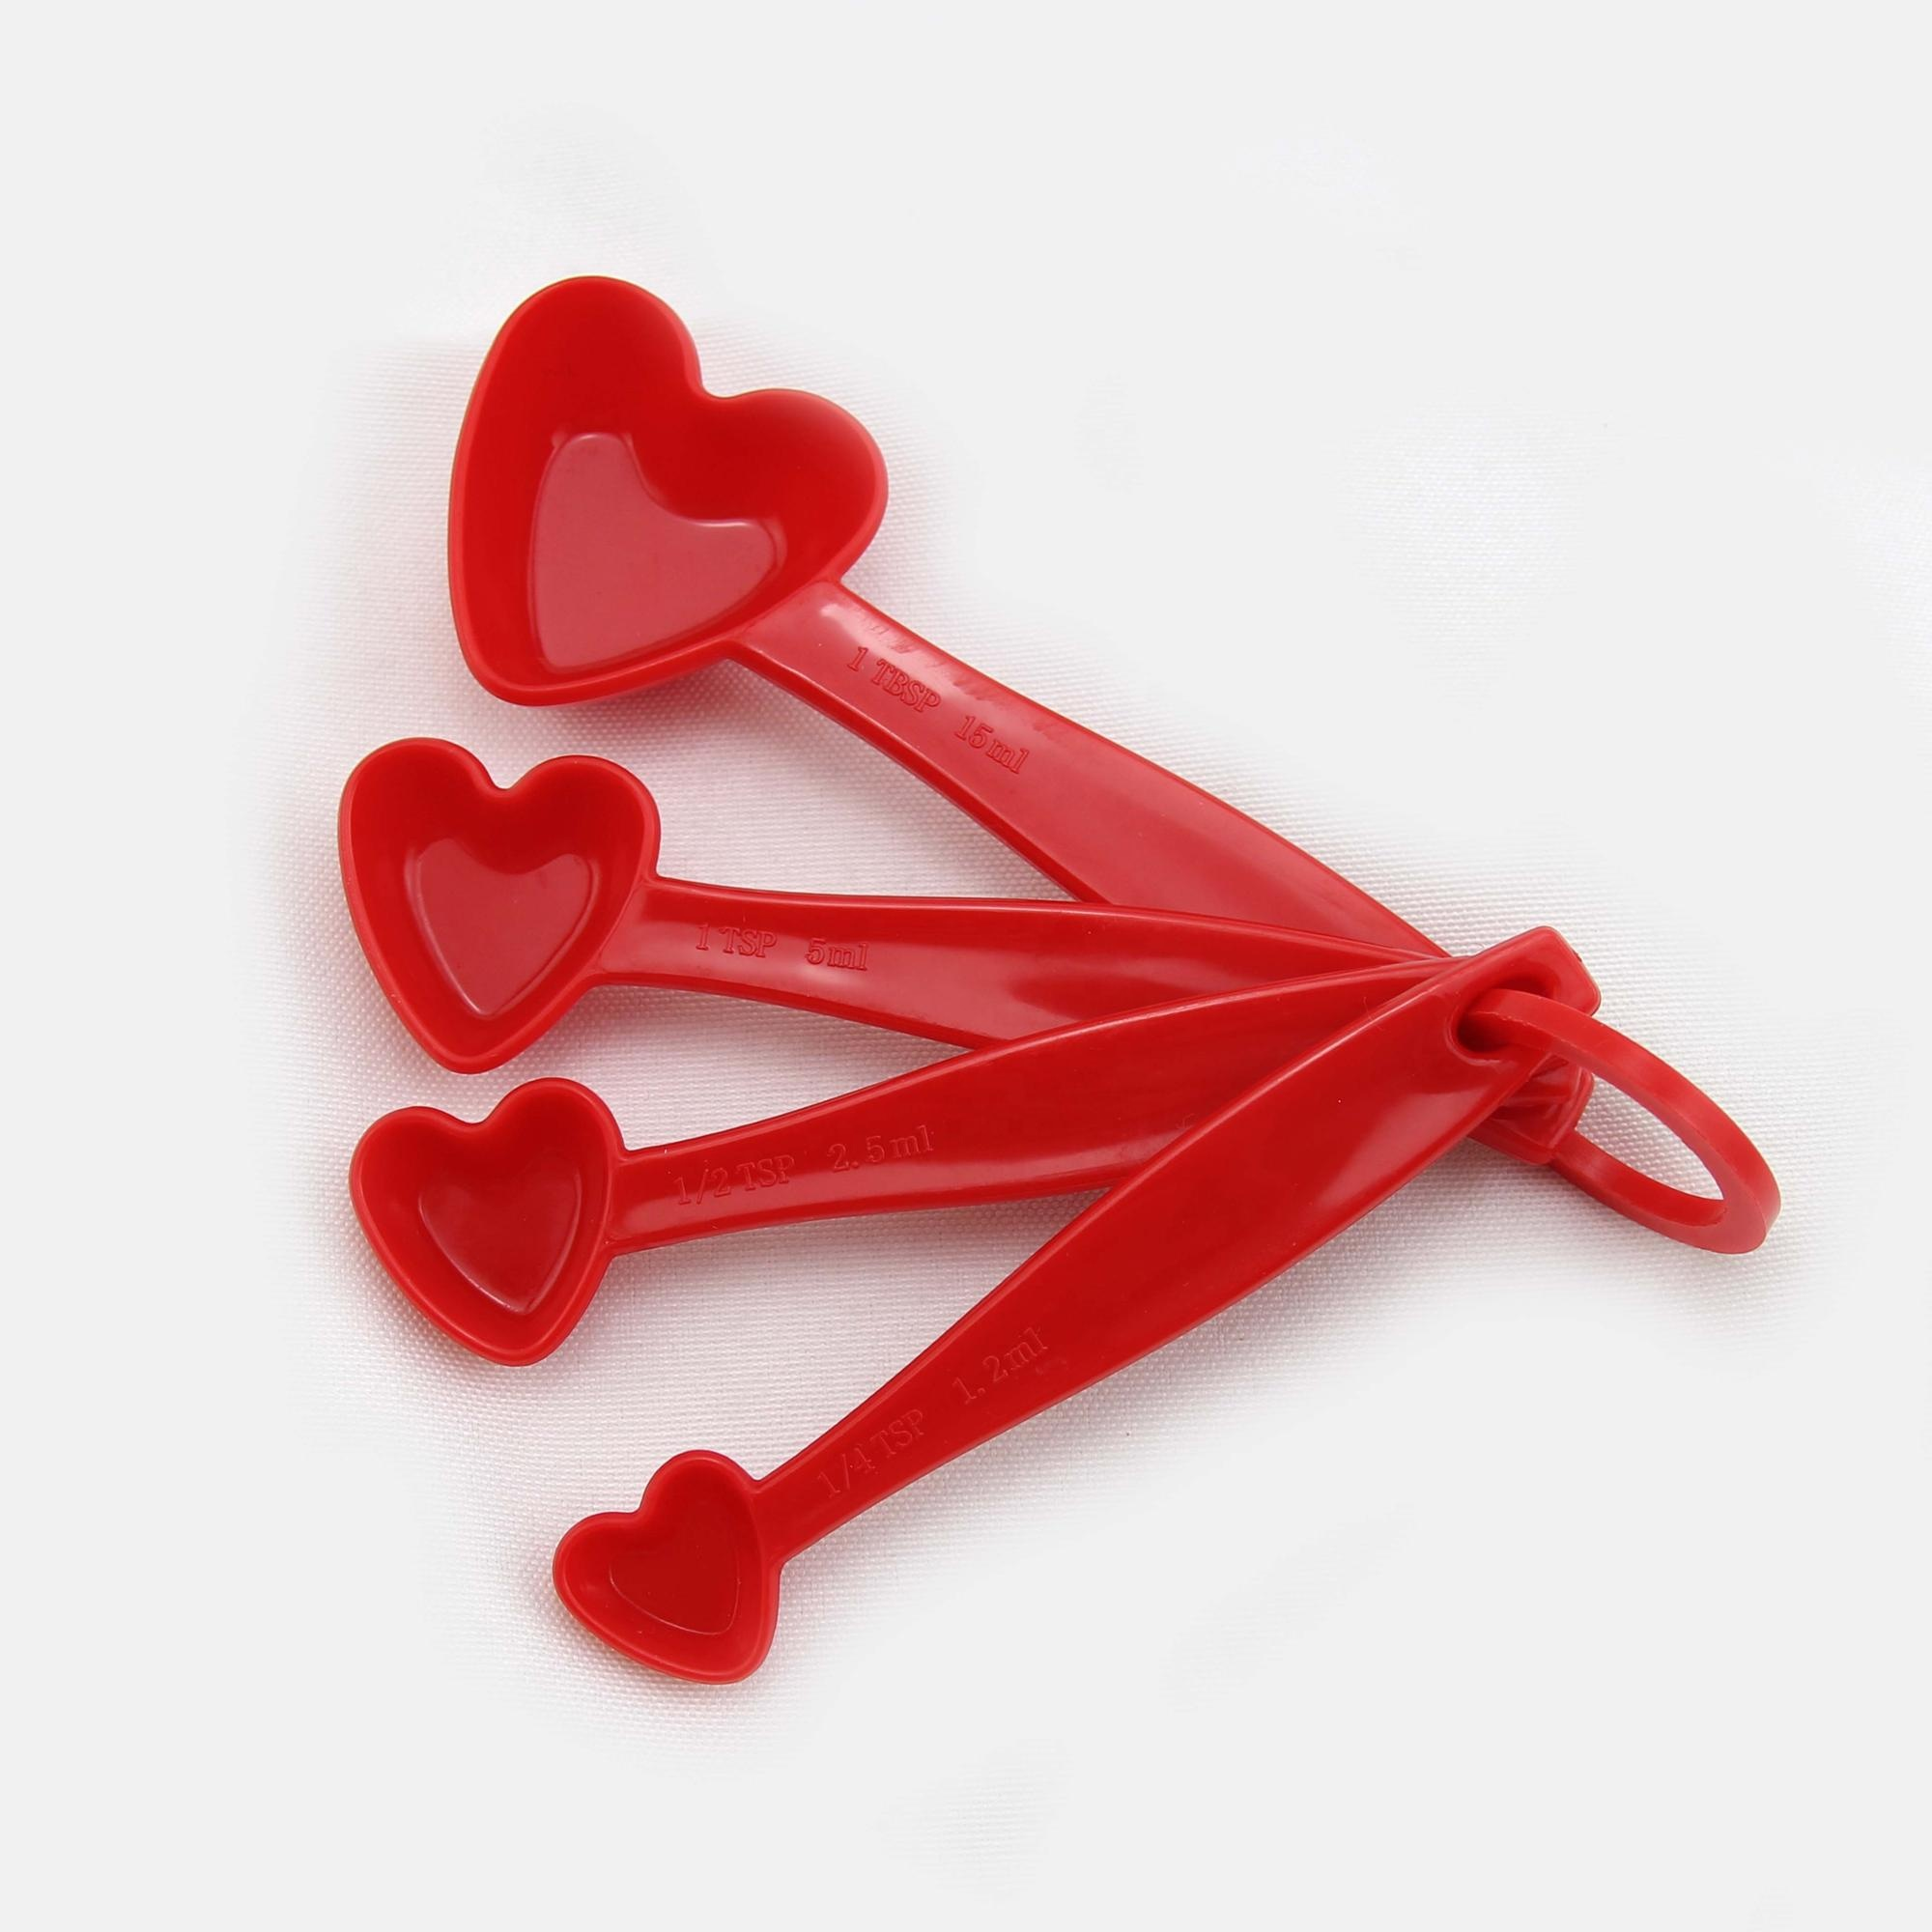 Plastic Heart shape 4 pieces measuring spoon gram measuring spoon